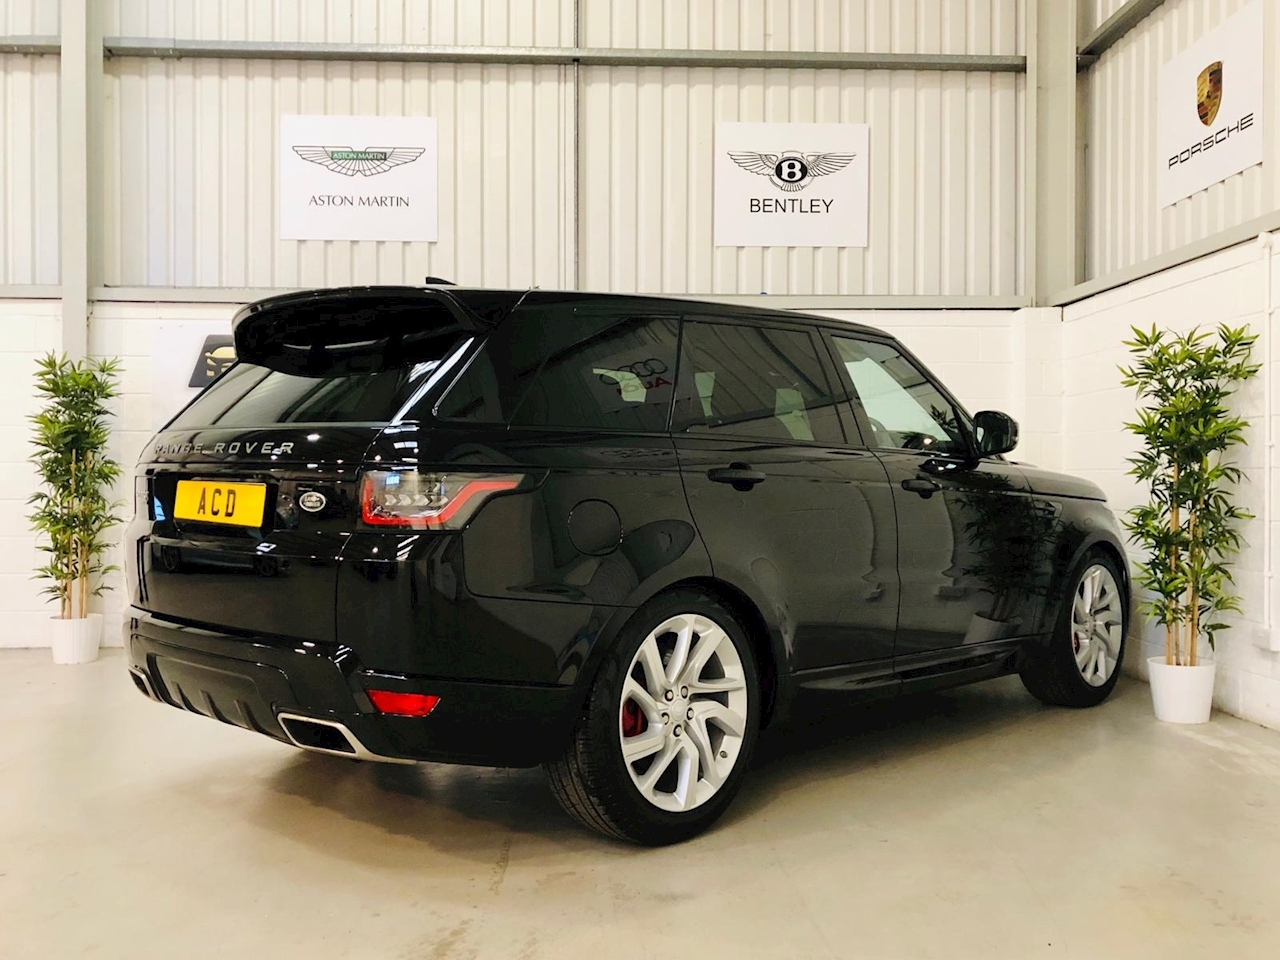 Range Rover Sport Hse Dynamic 2.0 5dr Estate Automatic Petrol/Electric